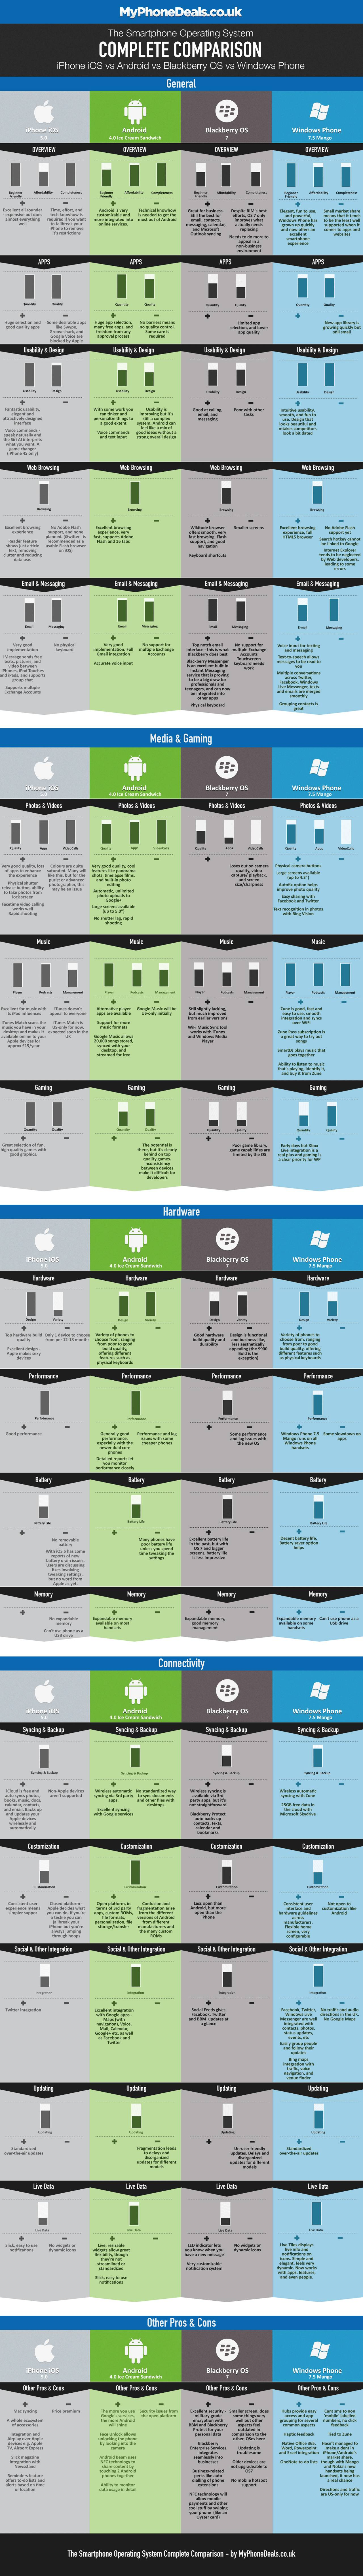 iOS Android Blackberry Windows Phone